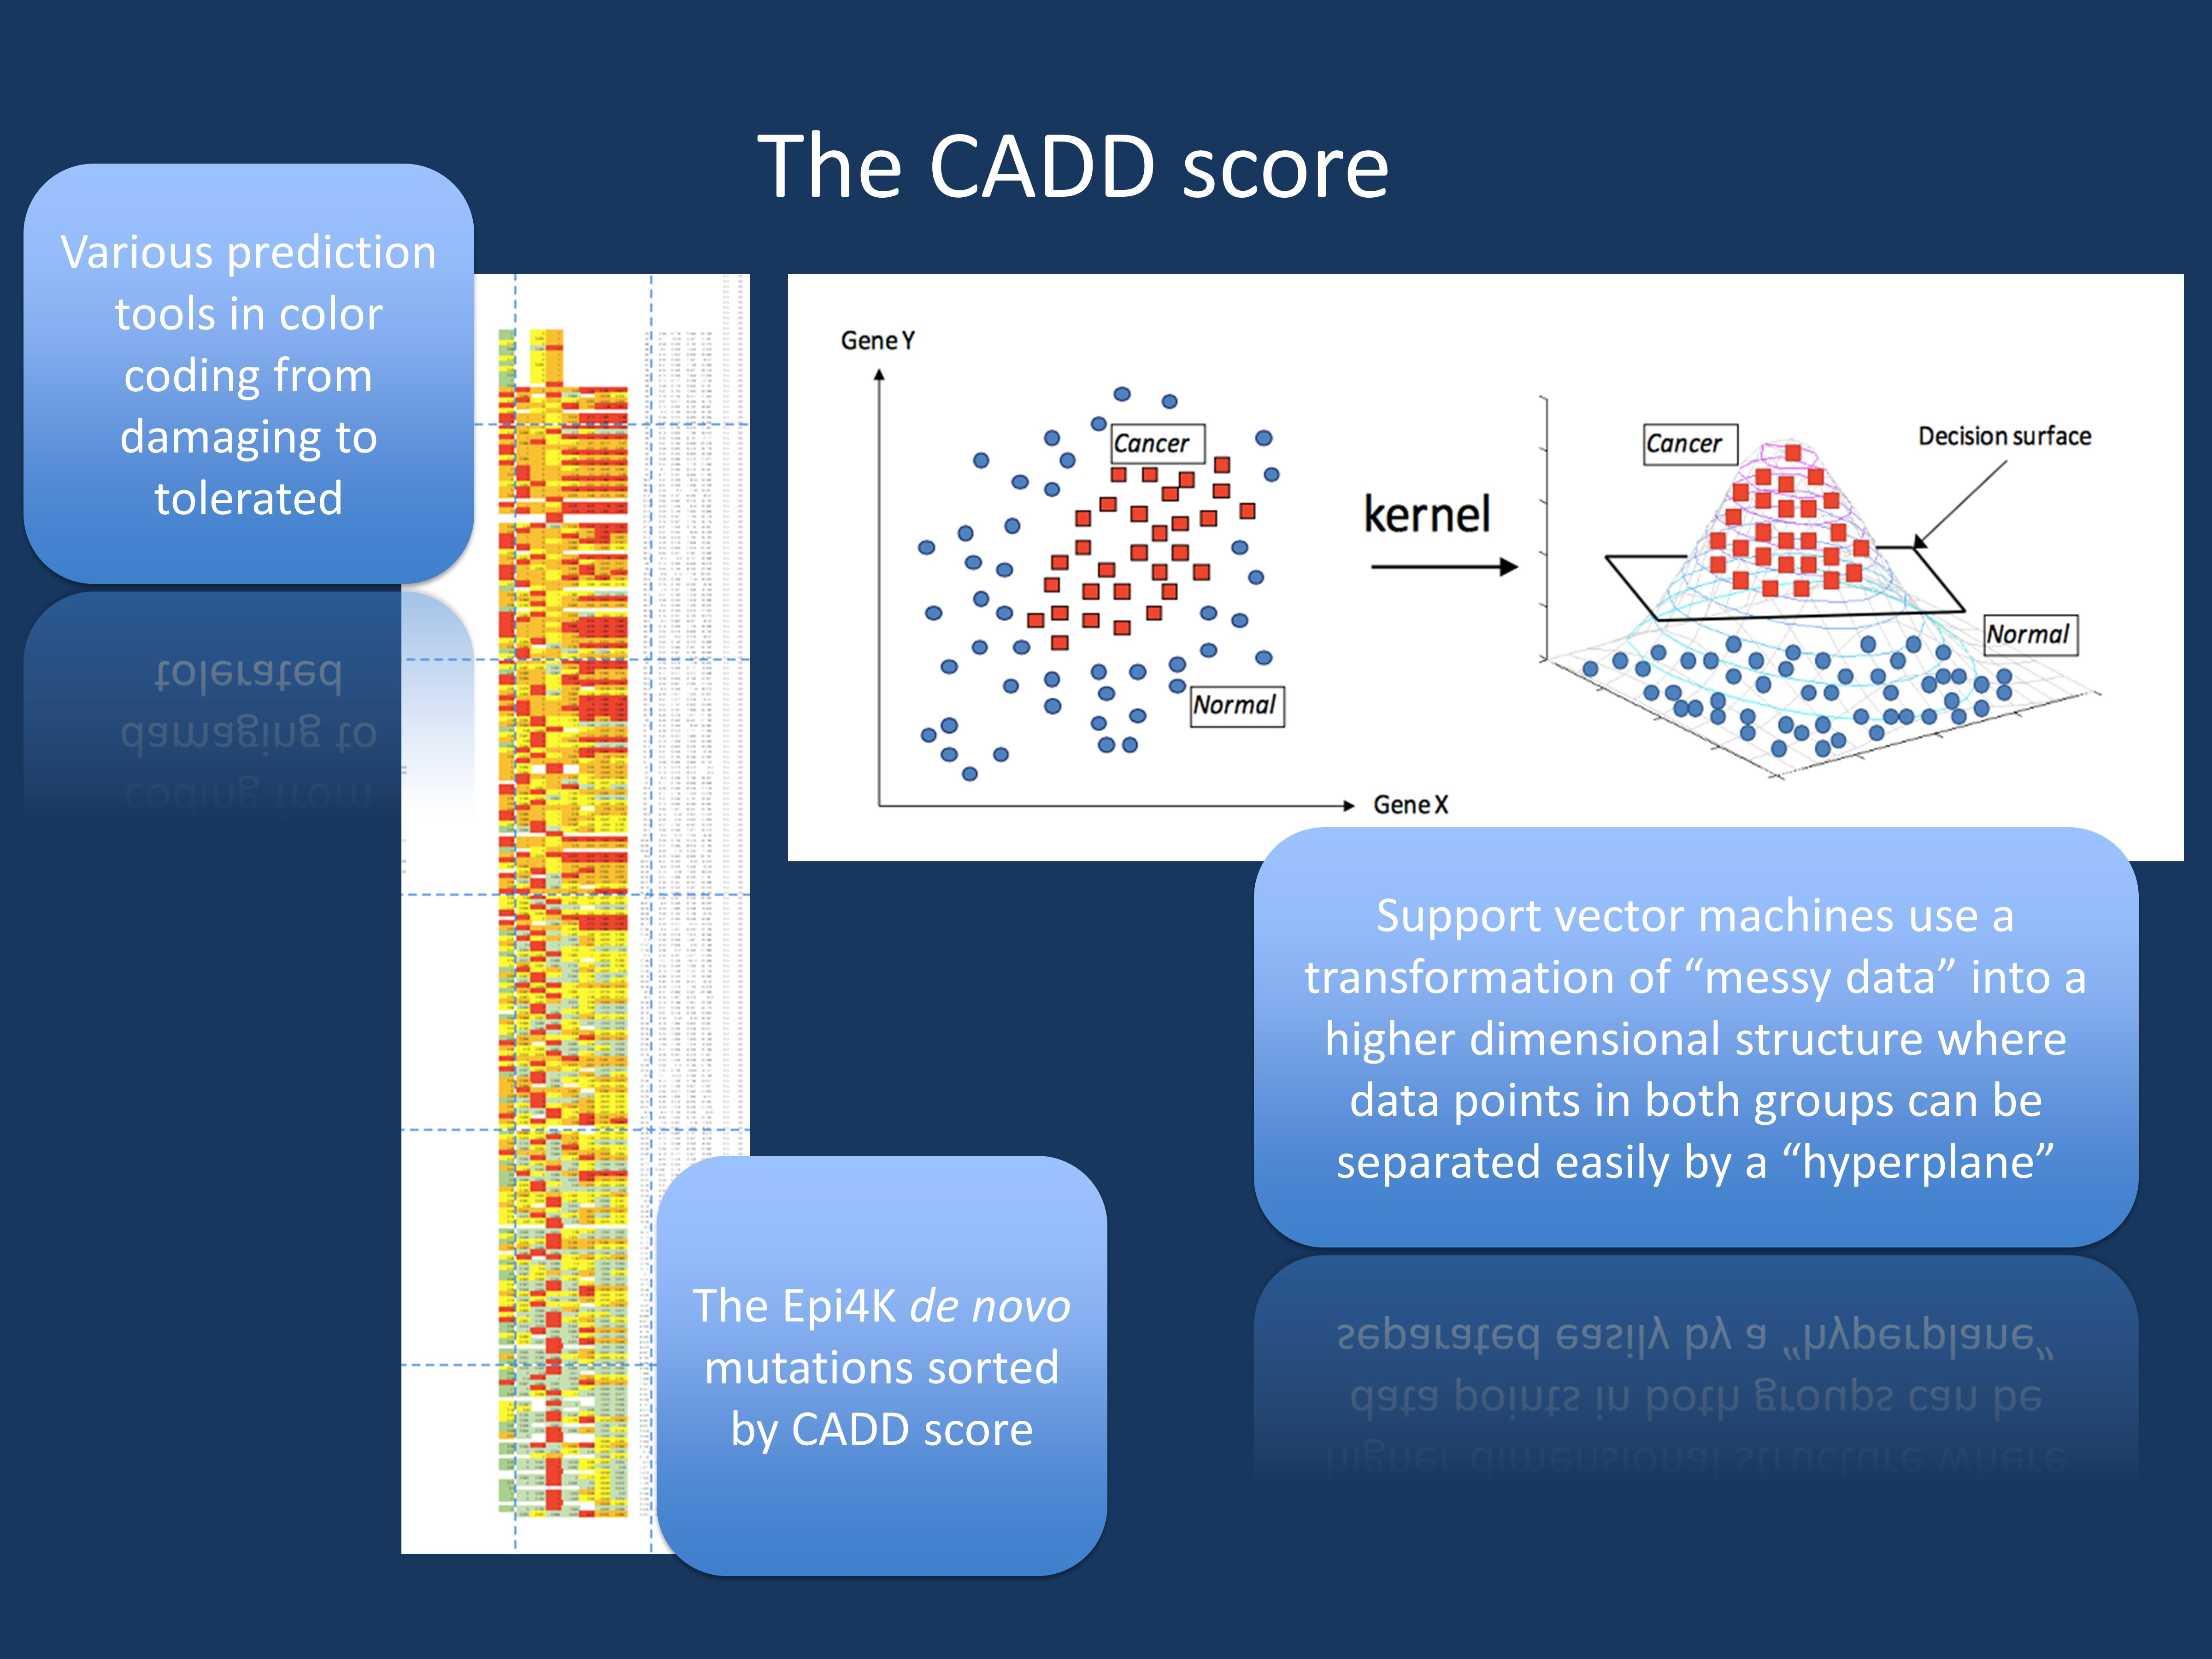 Here is why CADD has become the preferred variant annotation tool